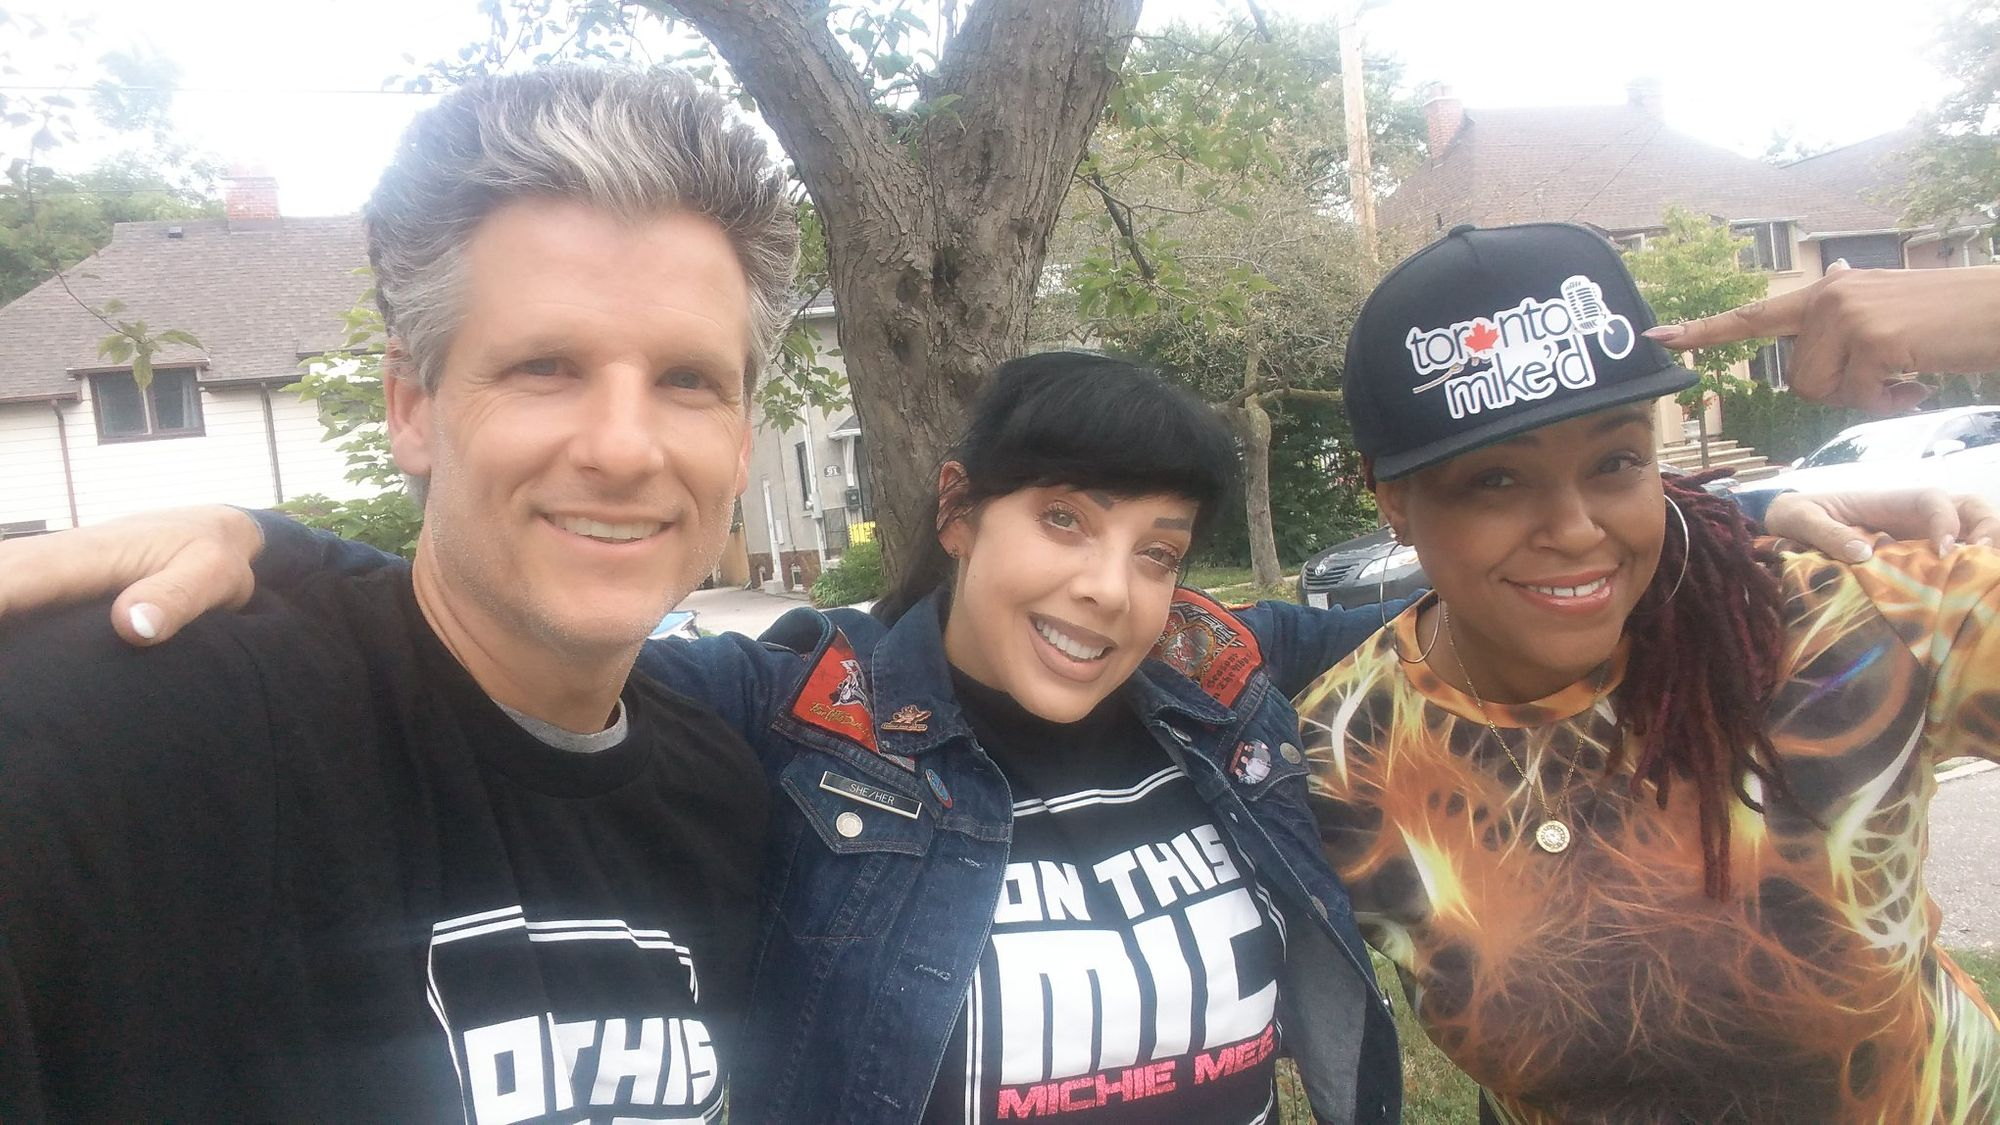 Toronto Mike'd Podcast Episode 510: Bif Naked and Michie Mee